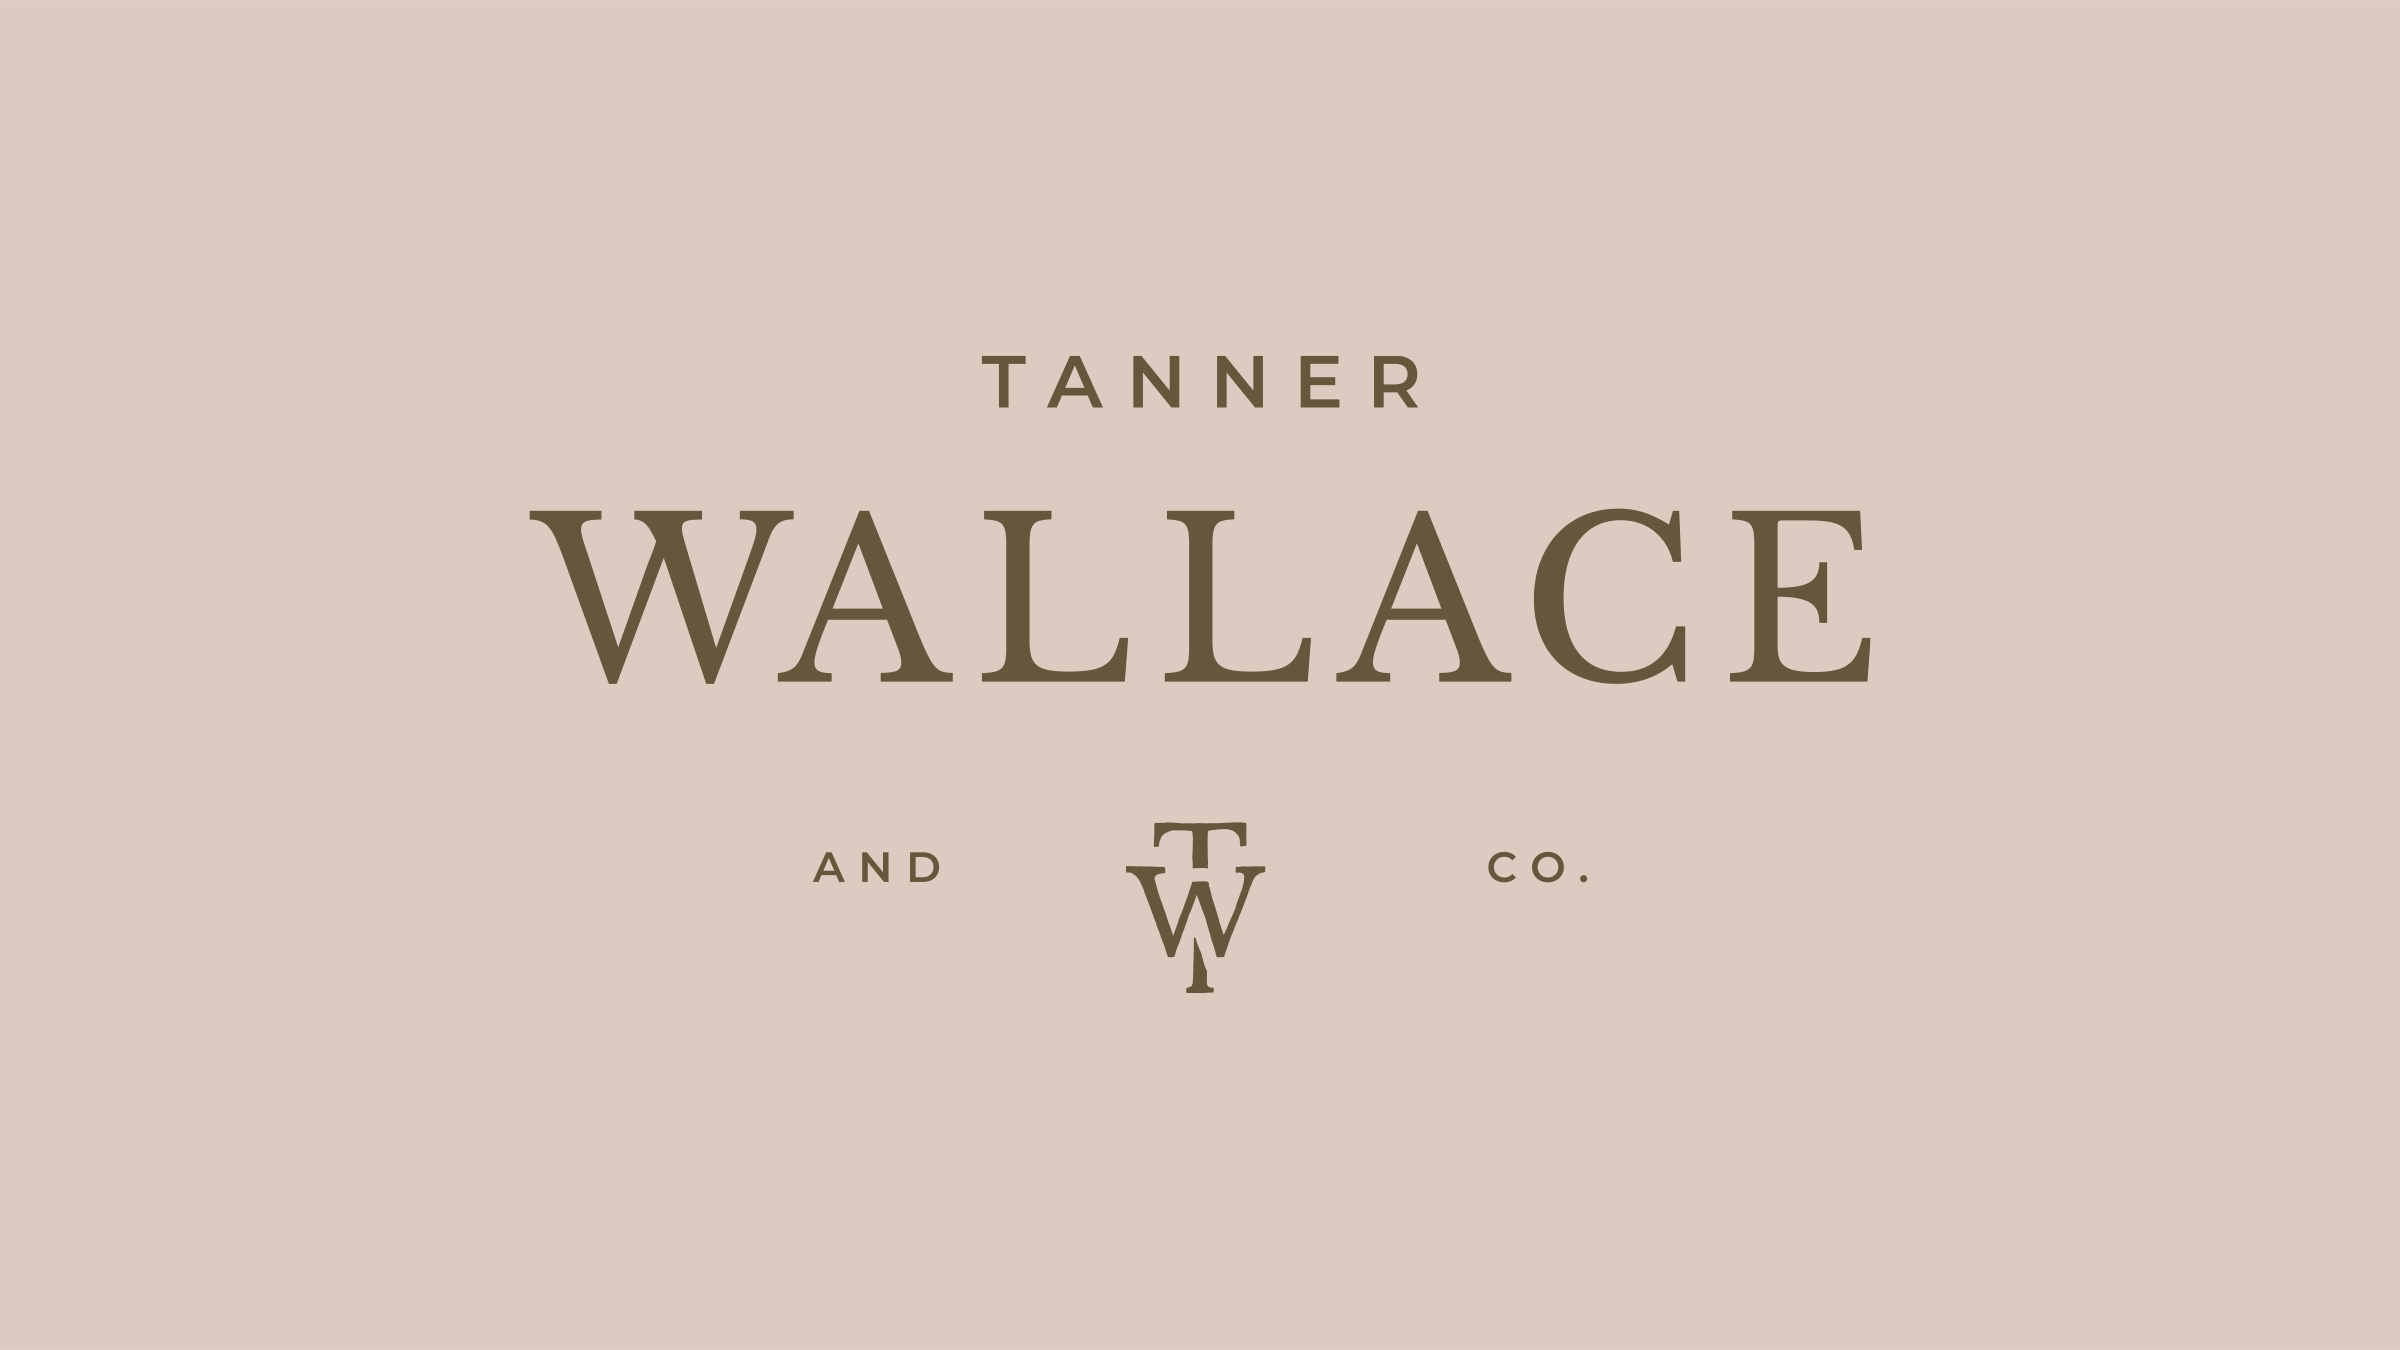 Tanner Wallace and Co. brand logo brown on cream